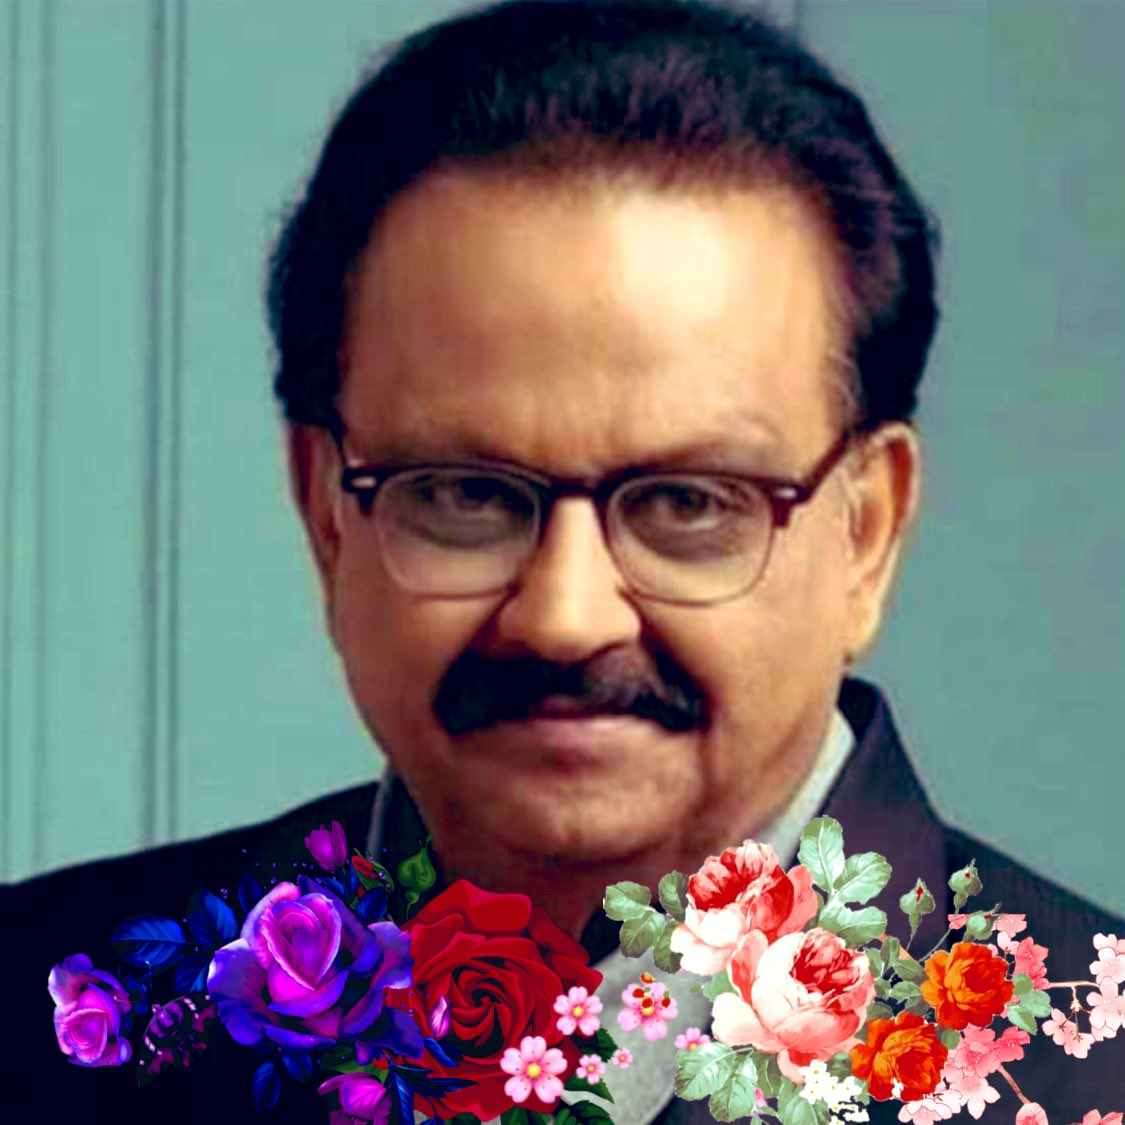 Prayers for the departed soul - the legendary popular Indian Cinema playback singer #SPBalasubrahmanyam who sang more than 40,000 songs!!!! 🙏🙏  A singer without parallel, a human being good at heart!!  Heartfelt condolences... 🌺🌼🌹🌸🌷🌻 https://t.co/oJPUfbtpZw